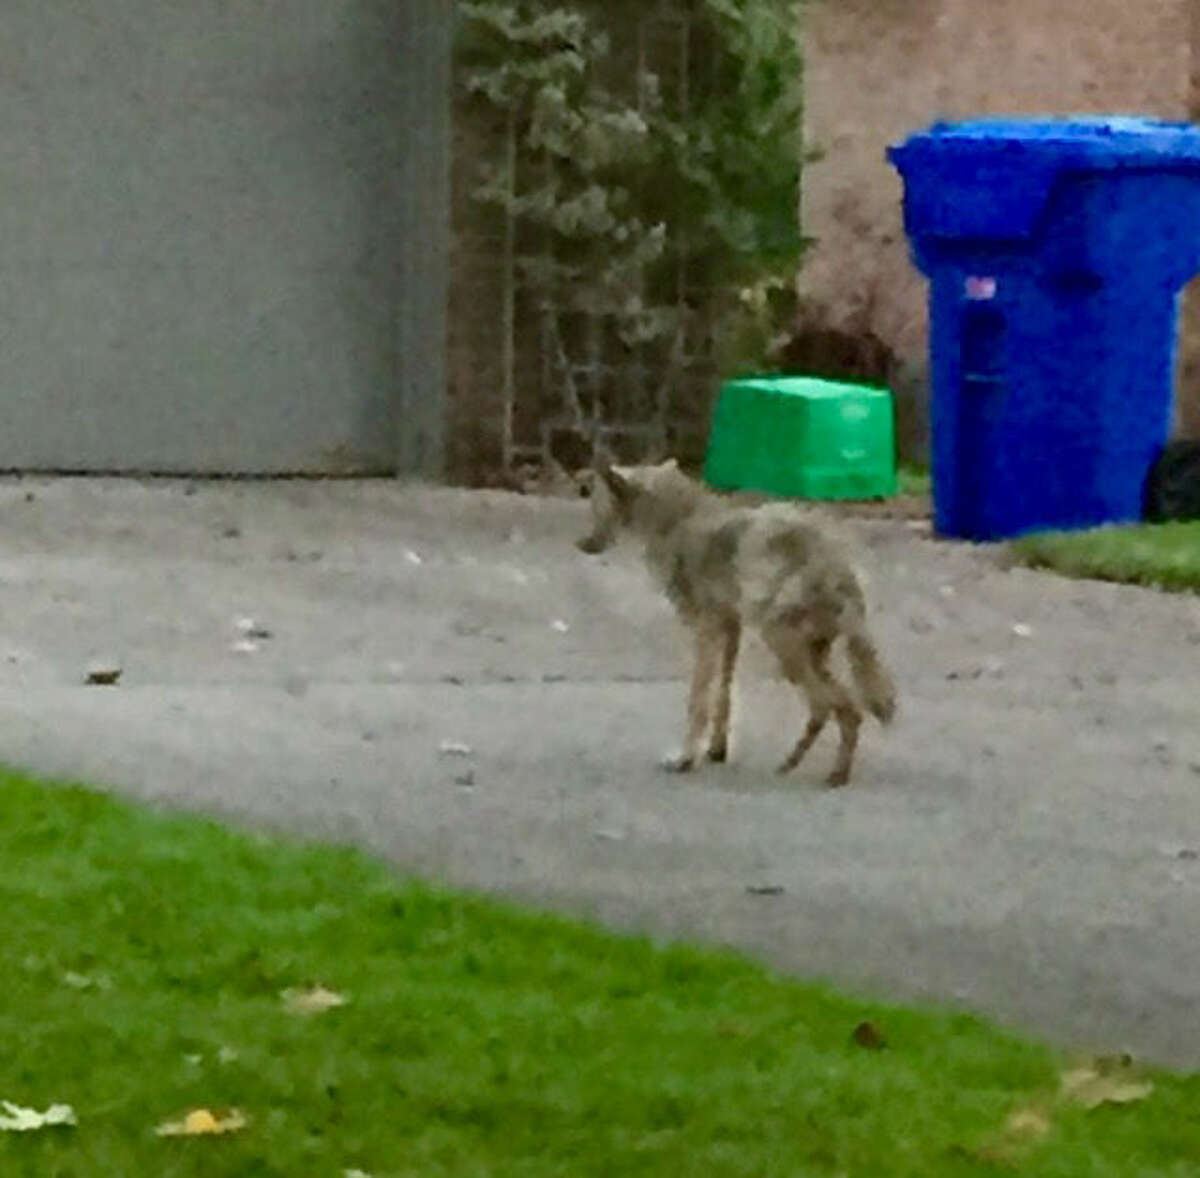 Police received a 911 call about the coyote, which appears to have mange and puffy eyes.